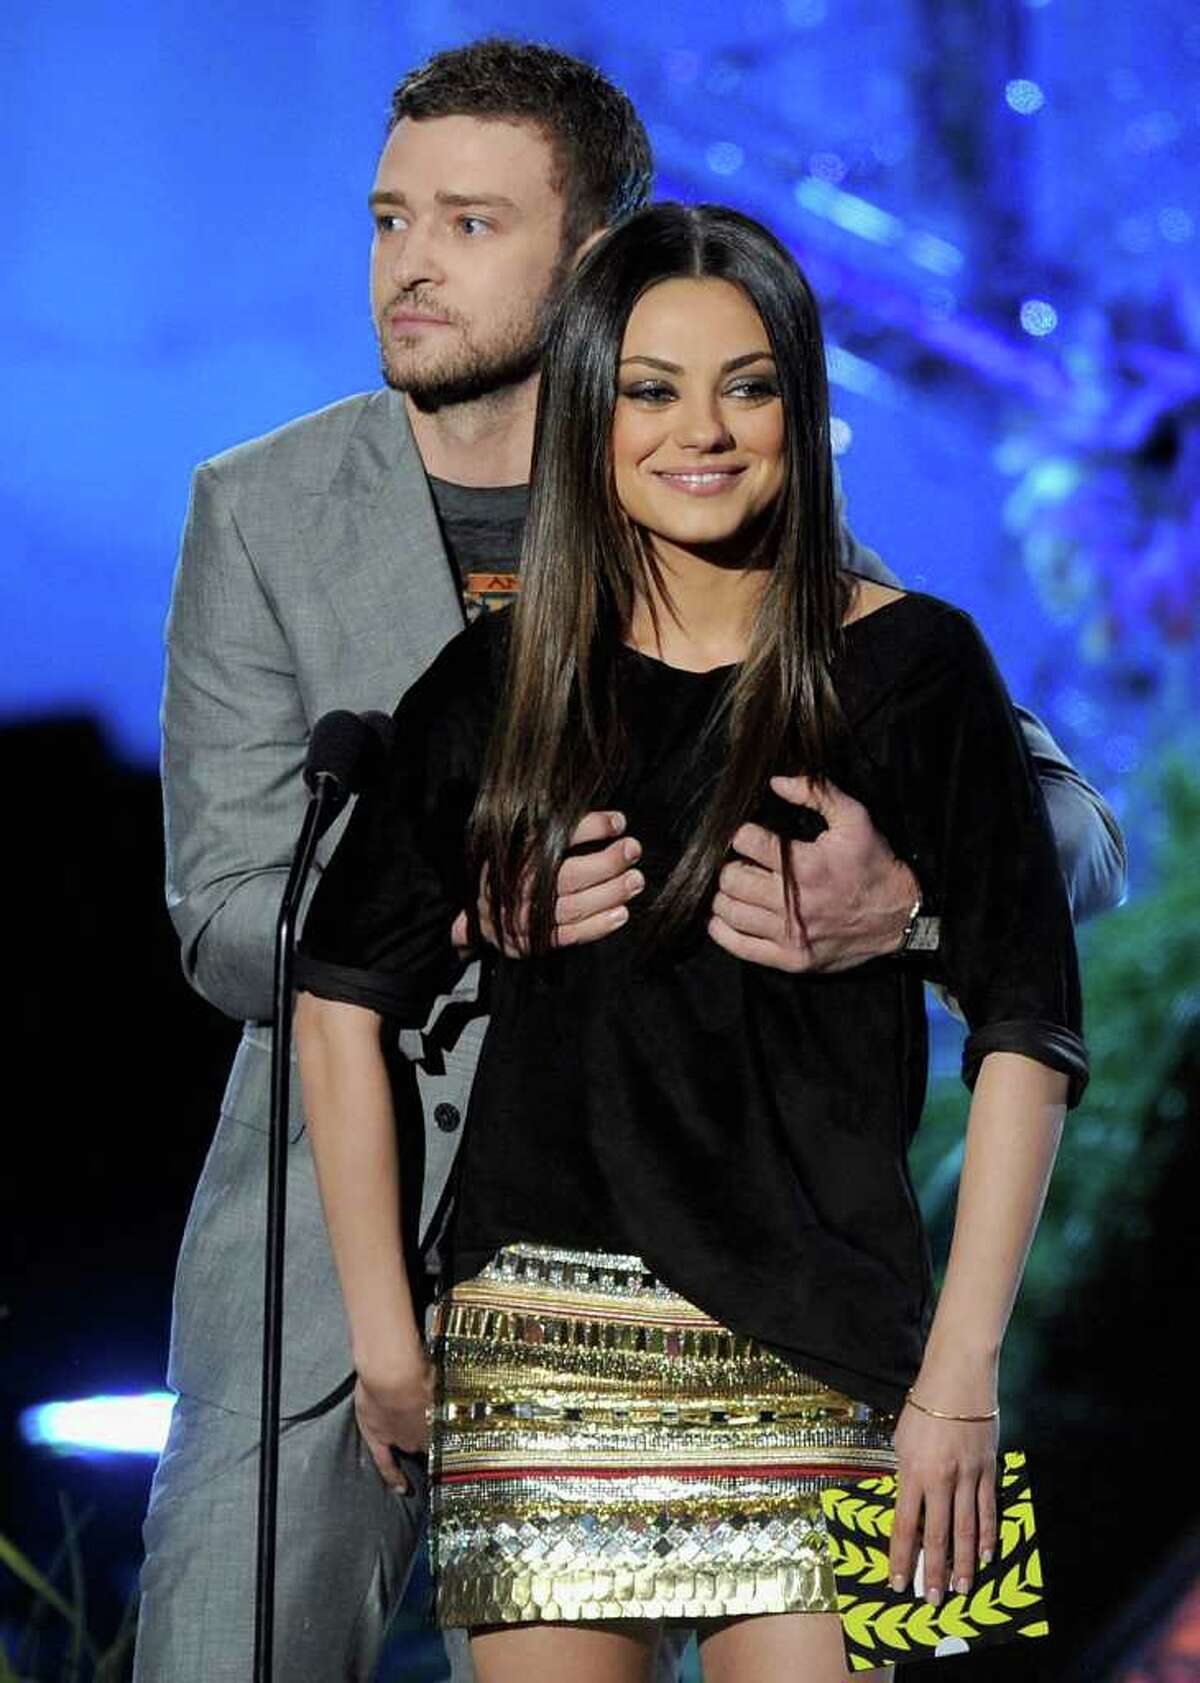 Actors Justin Timberlake (L) and Mila Kunis present an award onstage.